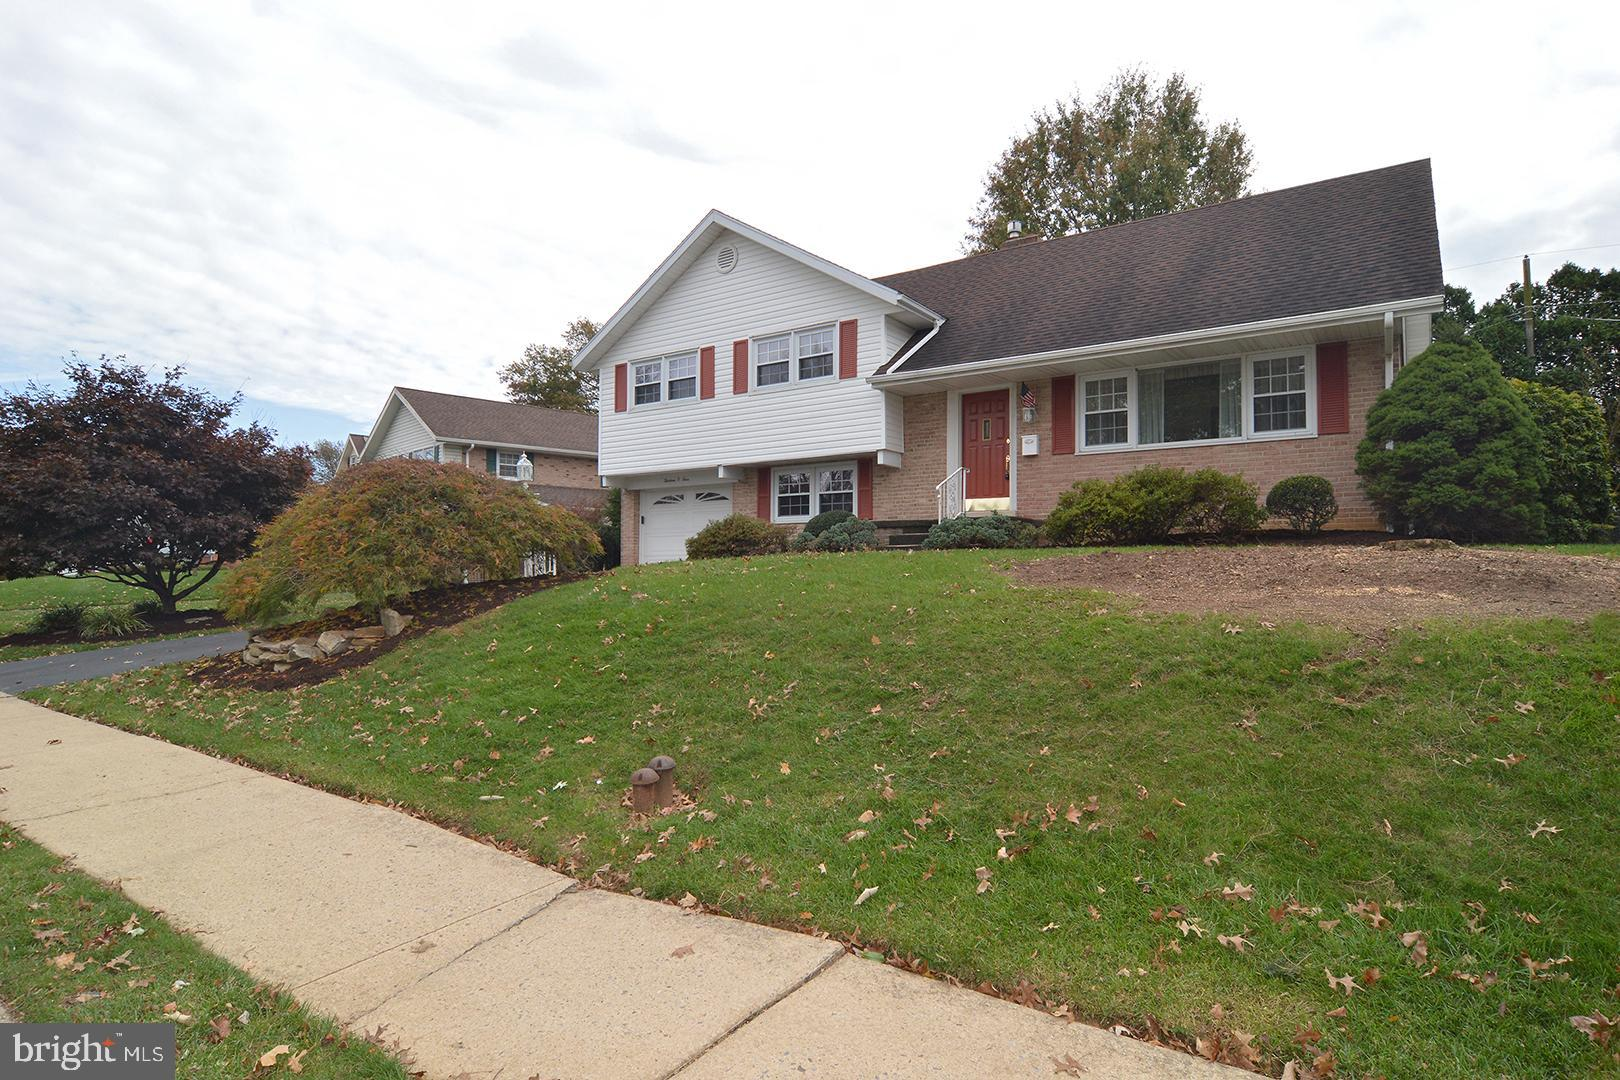 1304 WHITFIELD BOULEVARD, READING, PA 19609